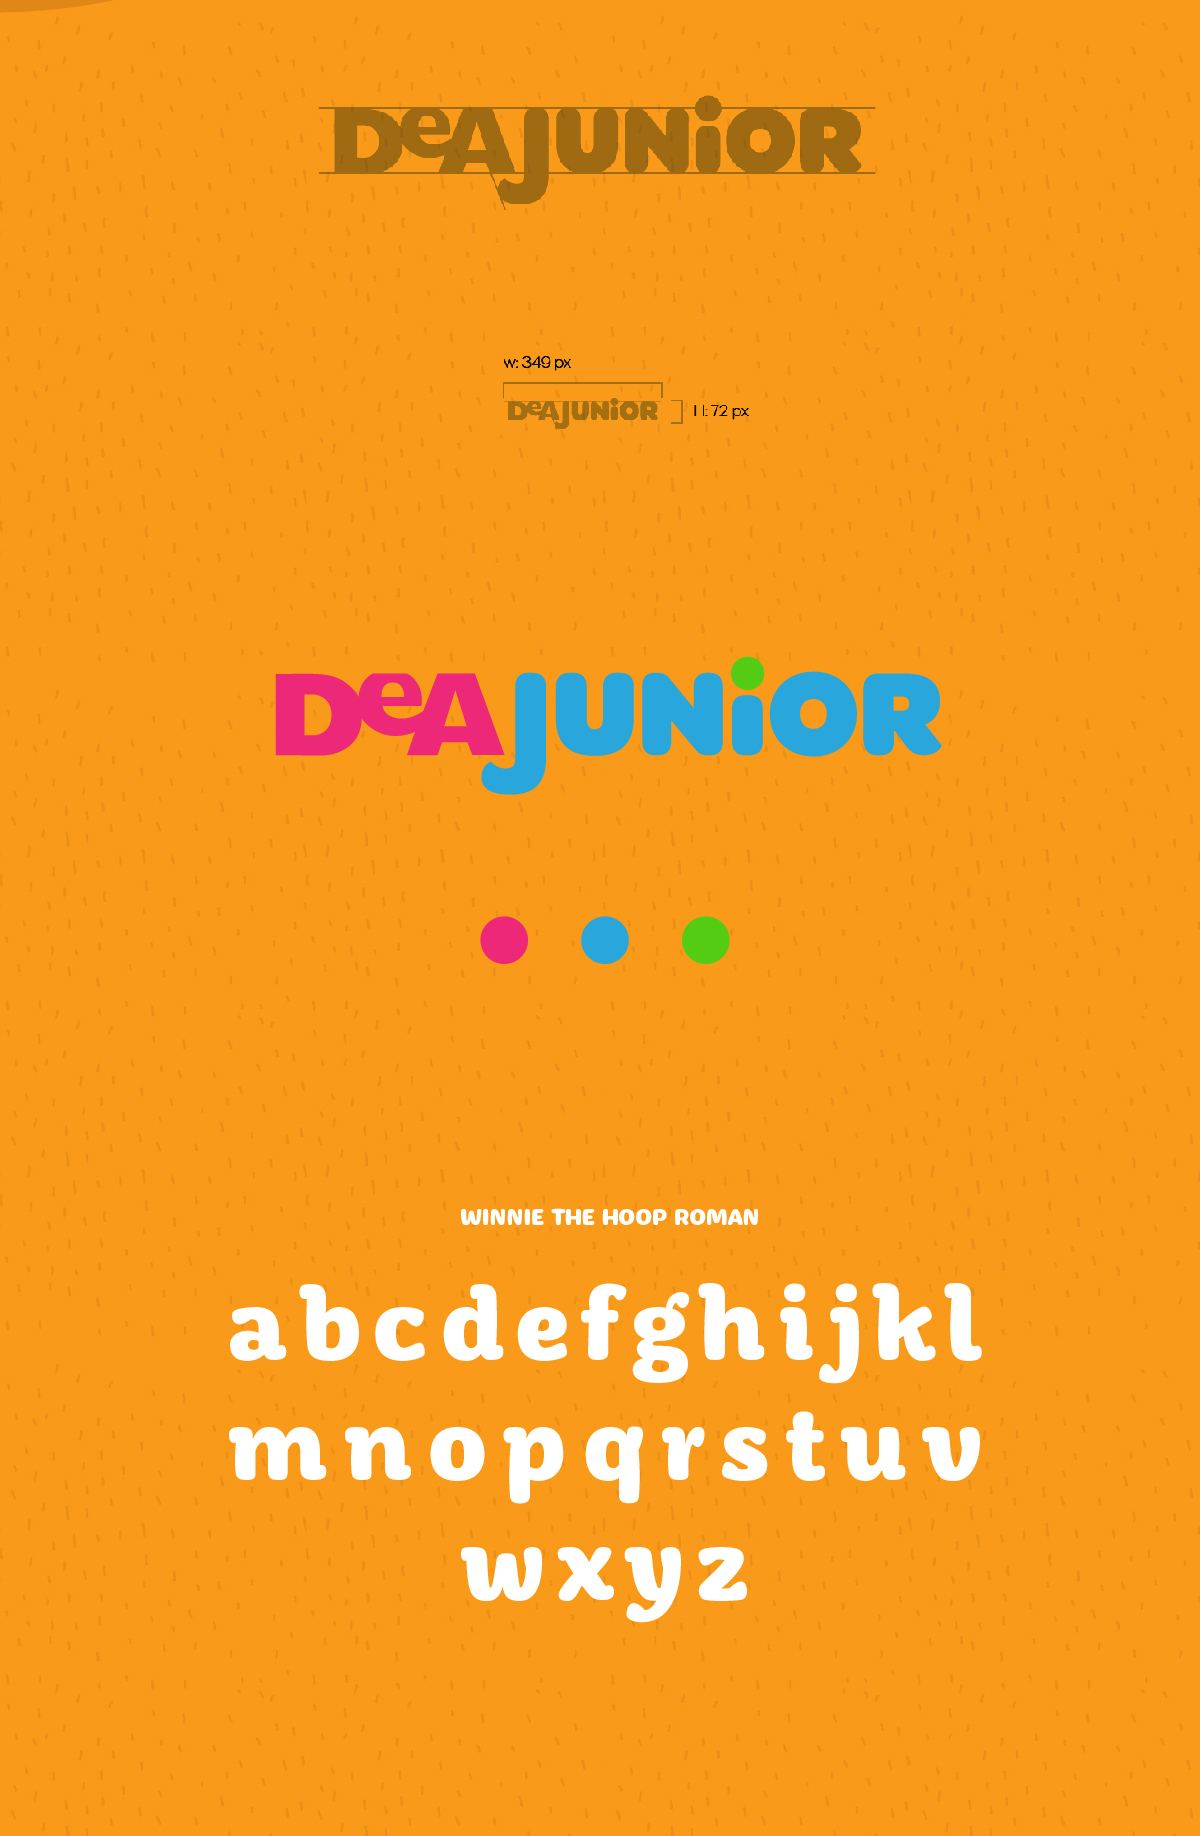 Deajunior,Character,character animation,after effects,kids,vector,Duik